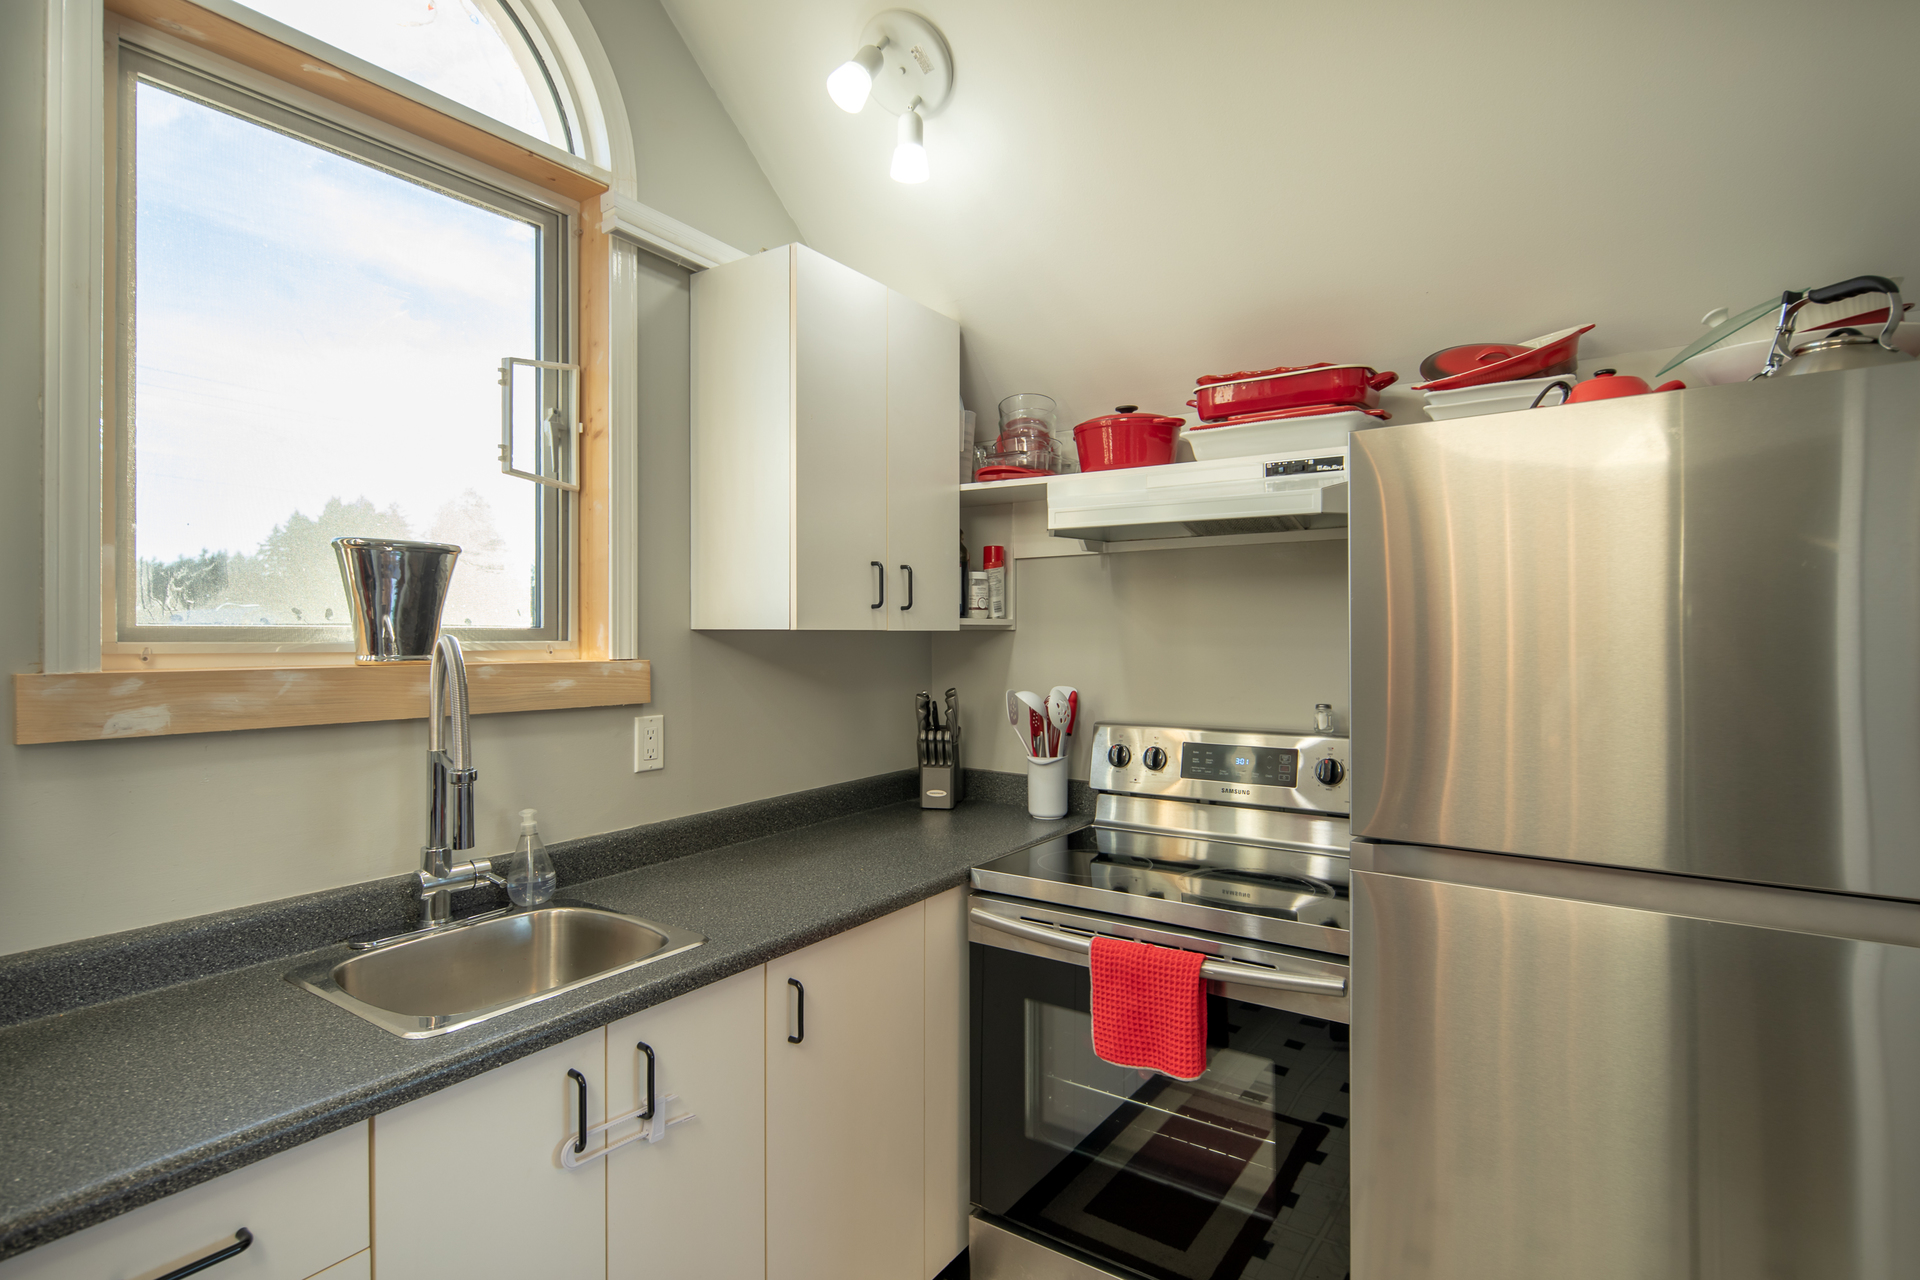 Guest House Kitchen at 1950 Highfield Road, Central Saanich, Victoria Bc Bc,